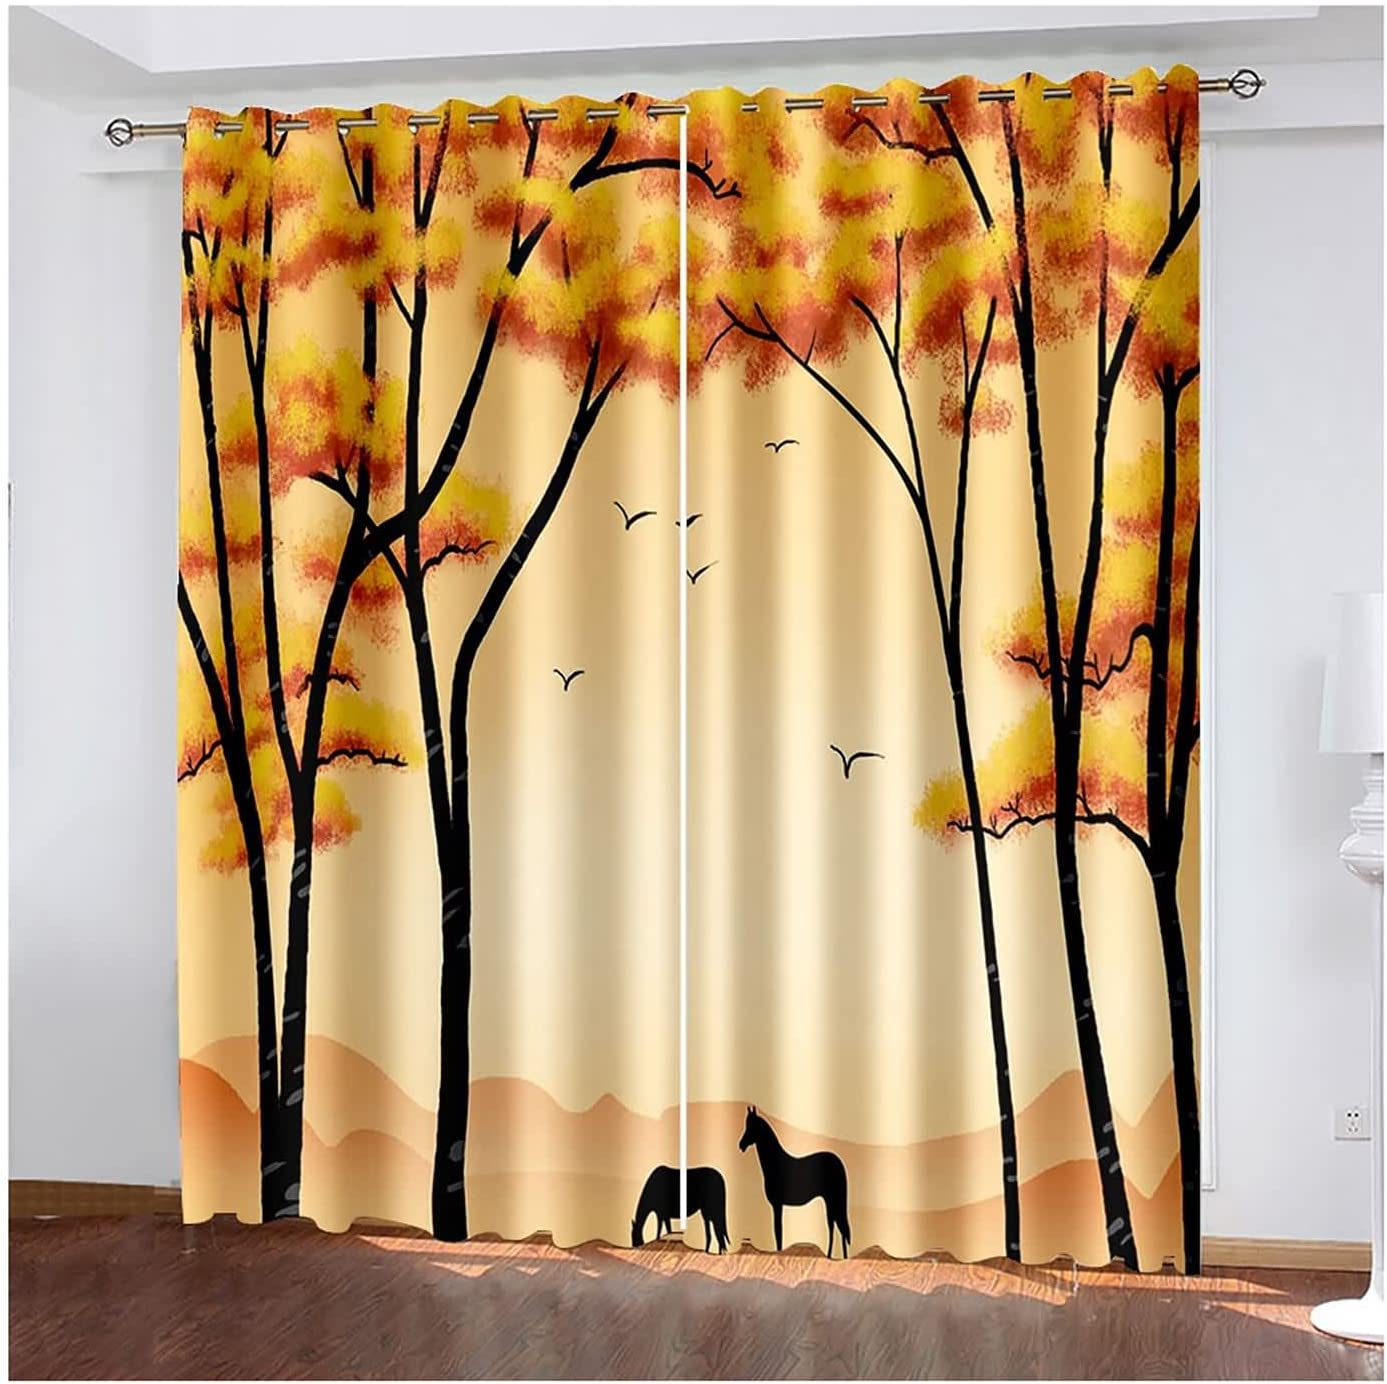 Blackout Curtains Max 87% OFF 2 Panels for San Jose Mall Design Horses Bedroom T